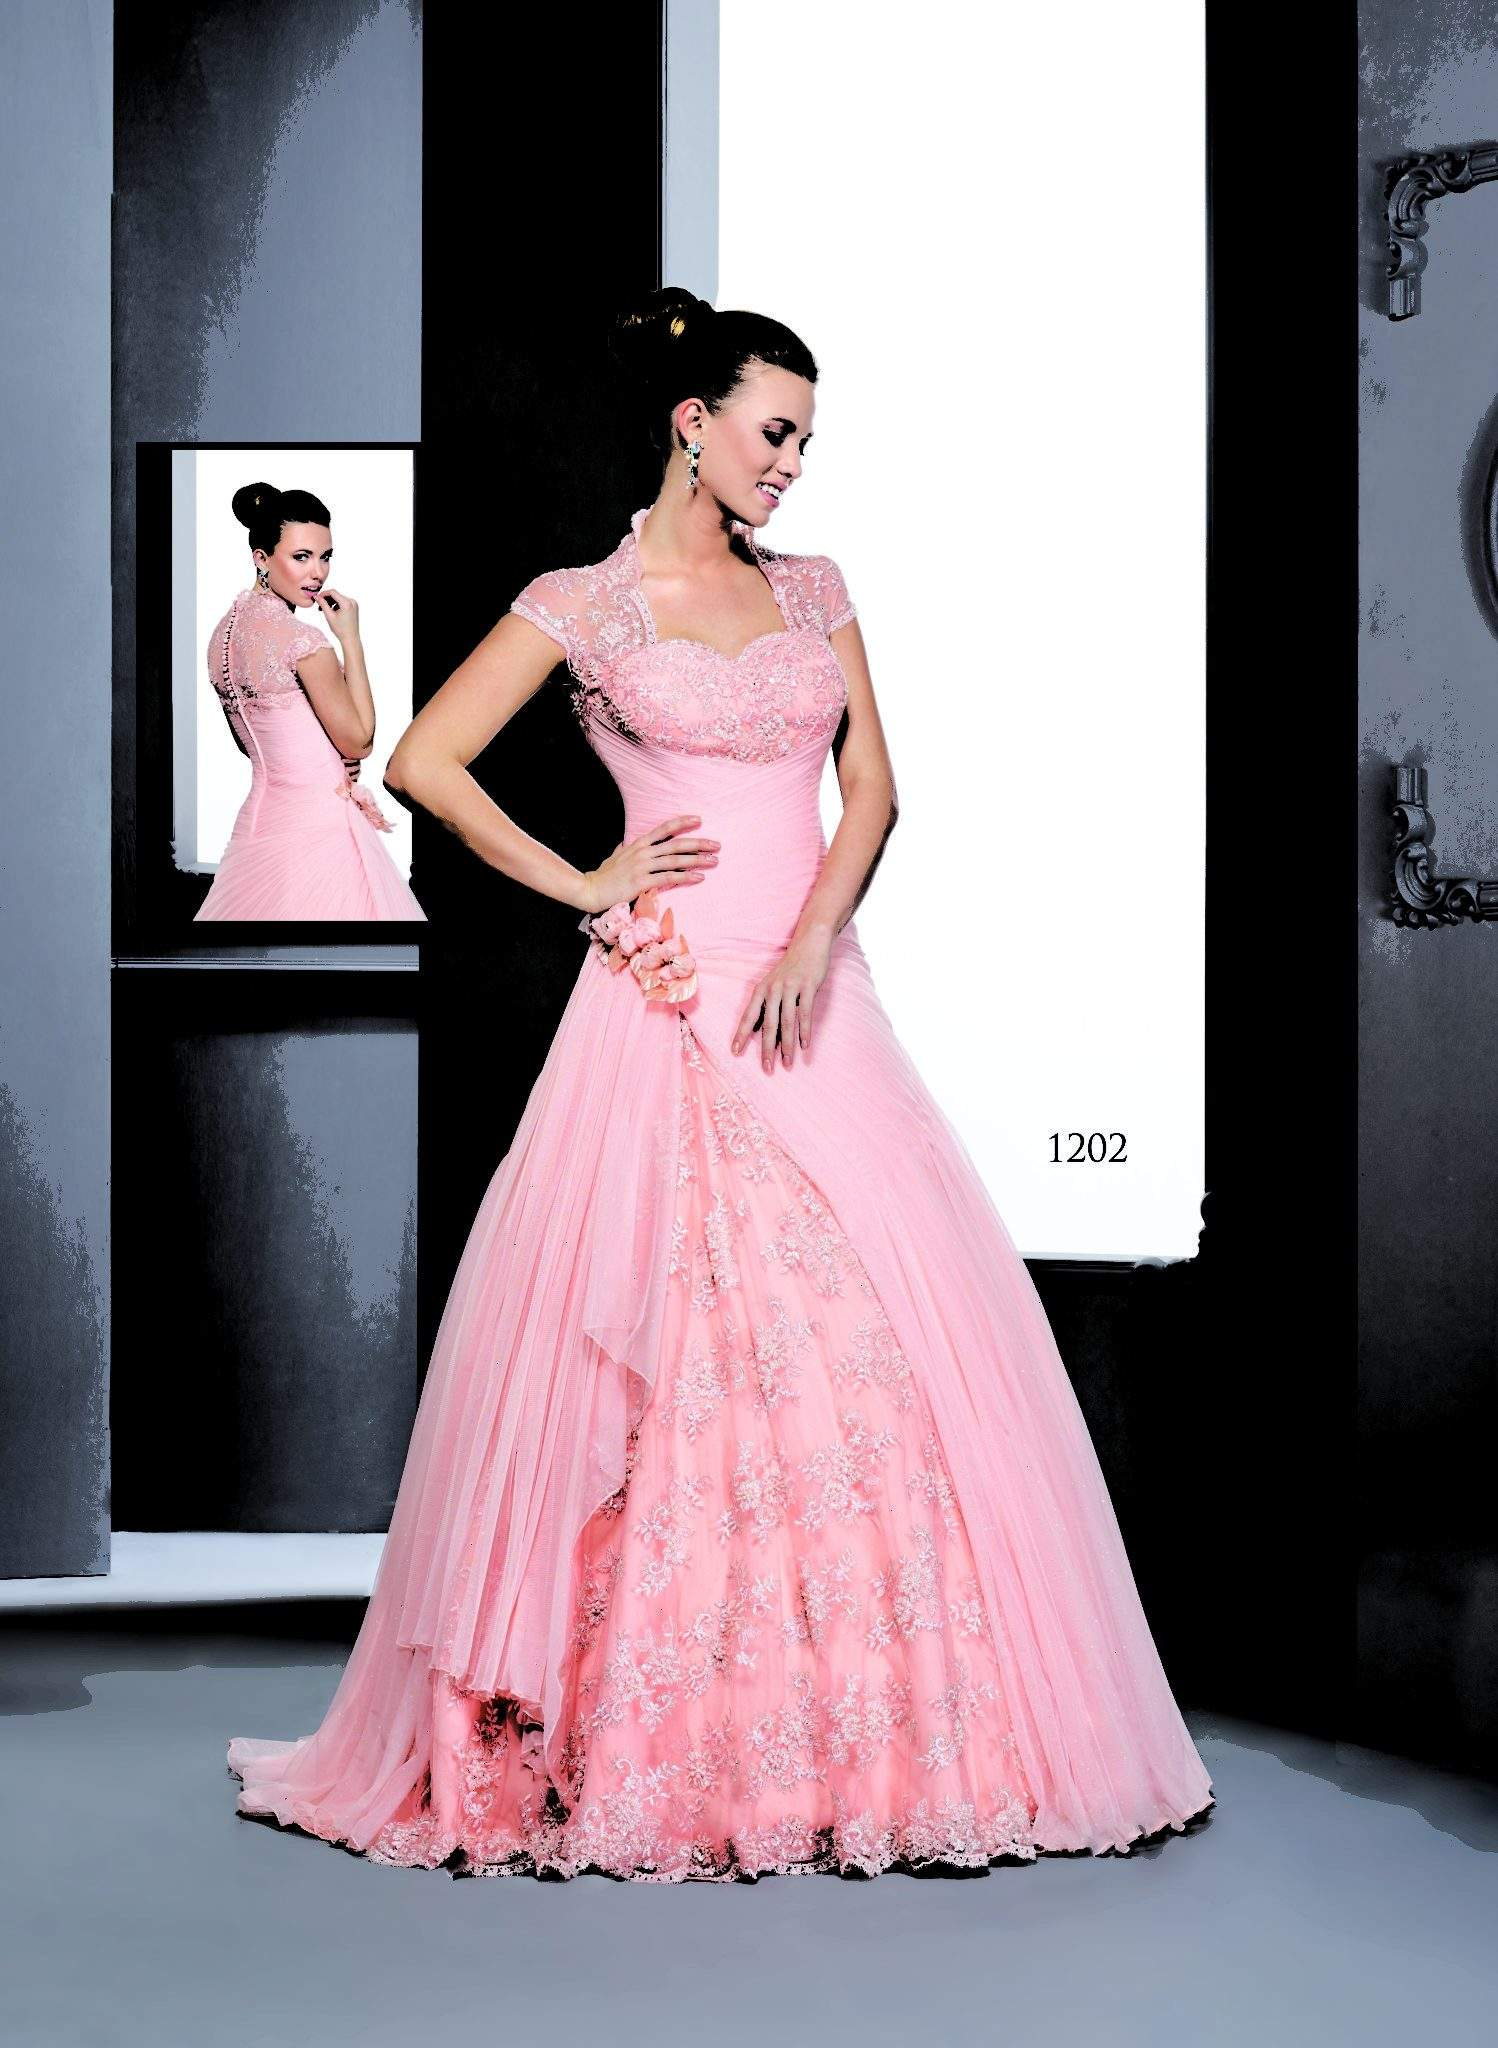 Pink Short Sleeve Ball Gowns - Darius Cordell Fashion Ltd